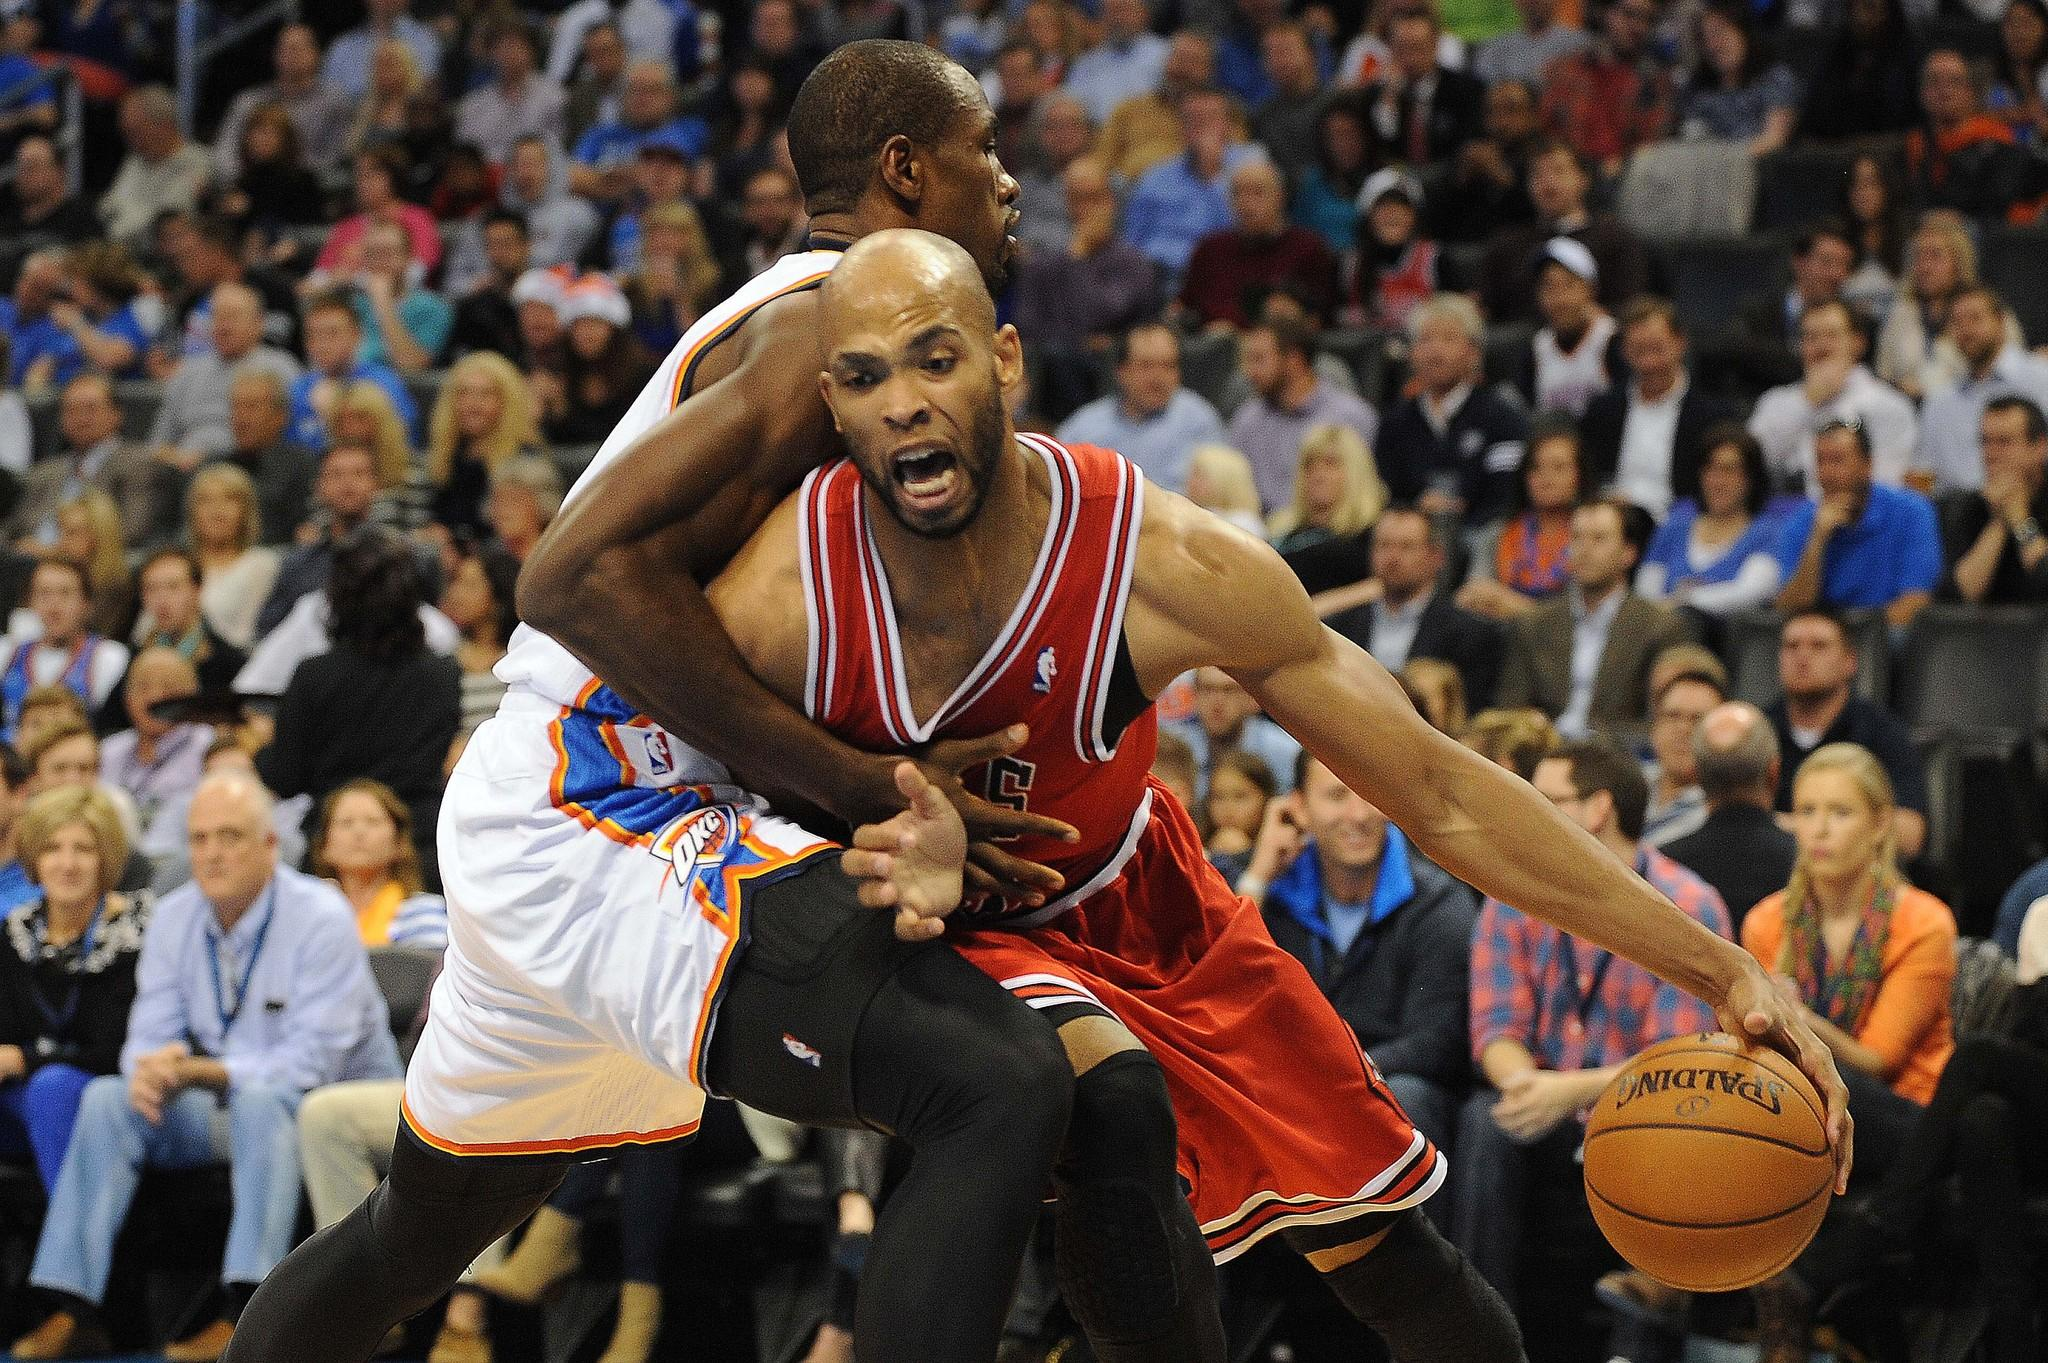 Chicago Bulls power forward Taj Gibson (22) dribbles the ball while defended by Oklahoma City Thunder power forward Serge Ibaka (9) during the second quarter at Chesapeake Energy Arena.